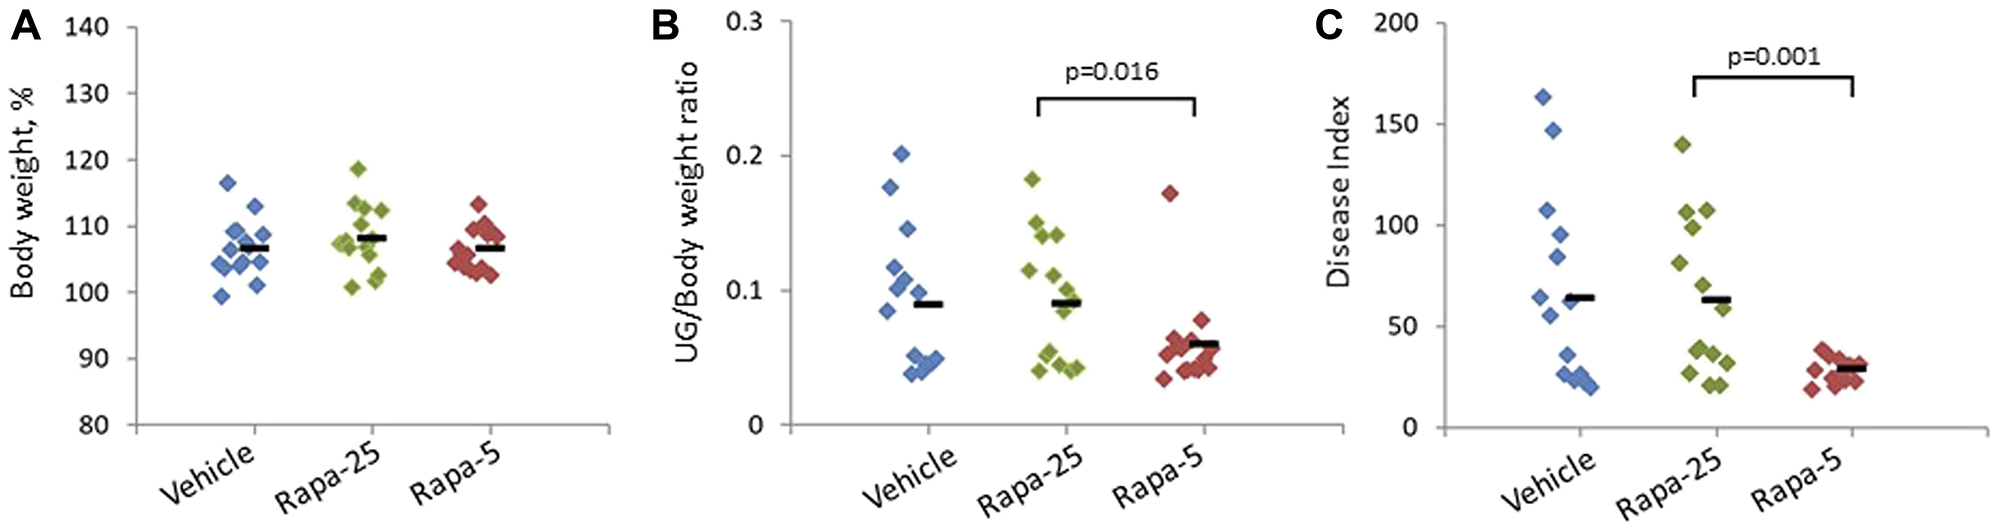 Effect of different Rapatar doses on body weight and PCa tumorigenesis in the psPten–/– mouse model.